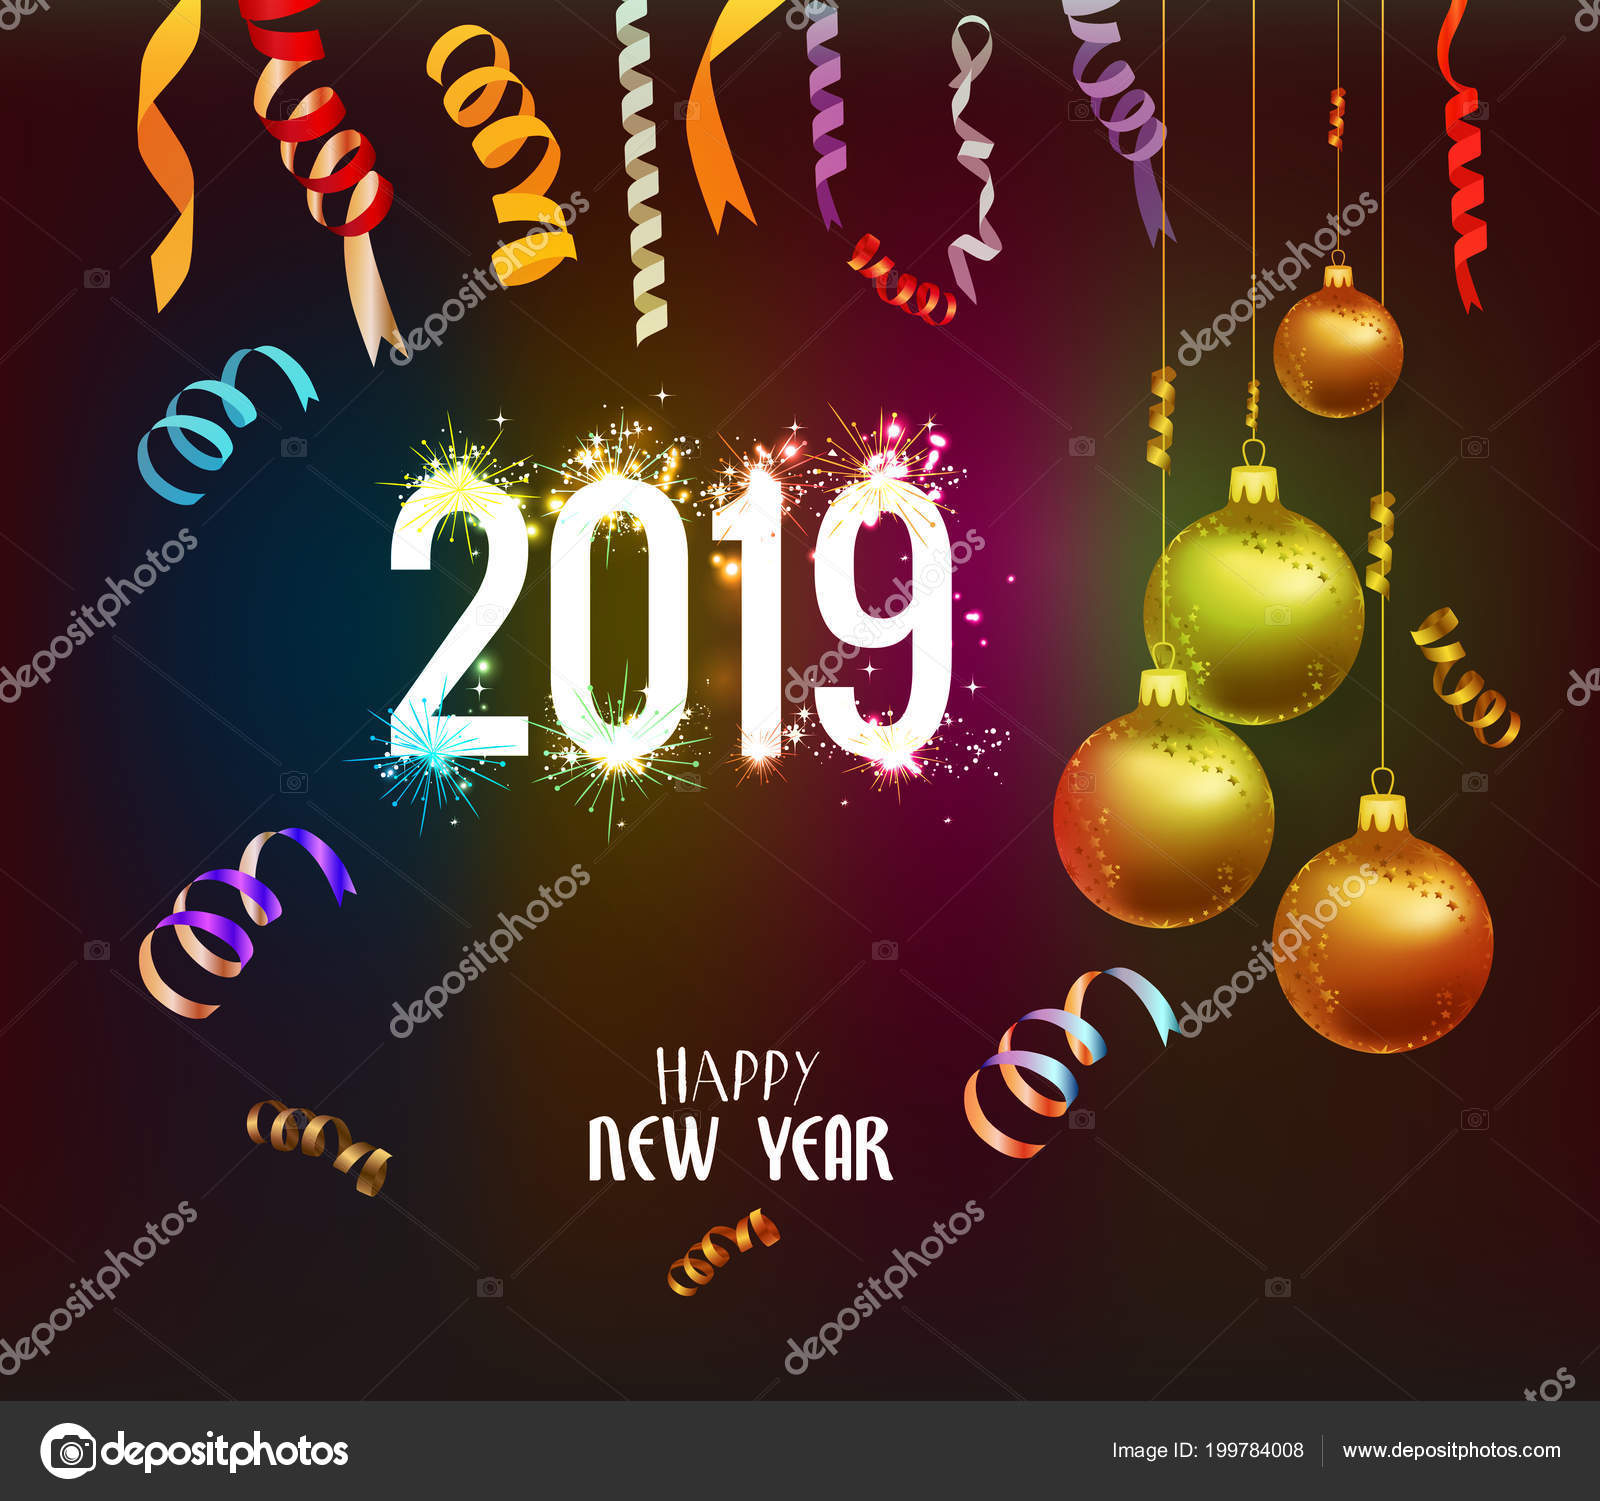 Happy New Year 2019 Background Christmas Confetti Gold Black Colors